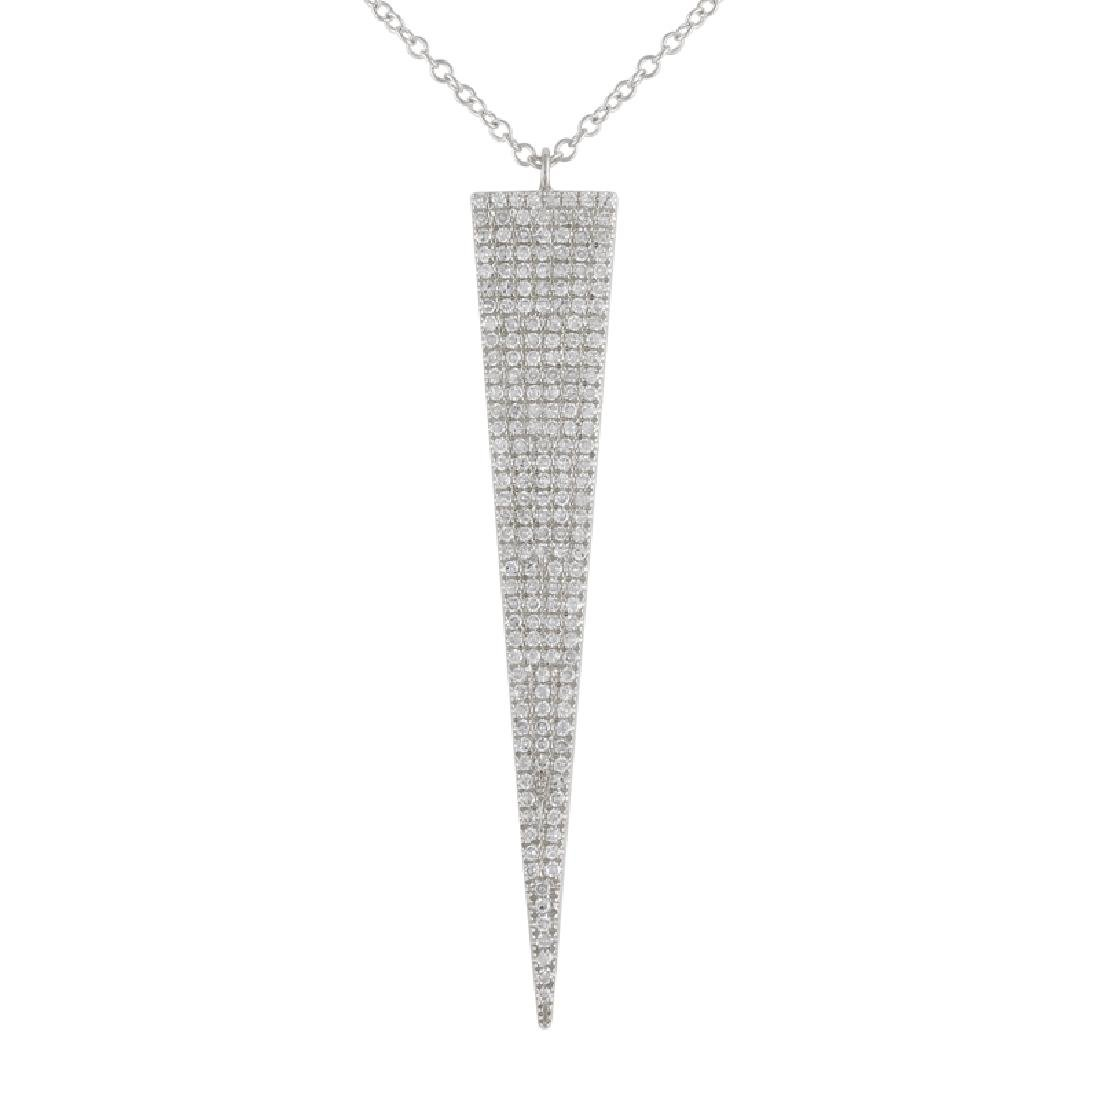 14KT White Gold Diamond Pendant With Chain